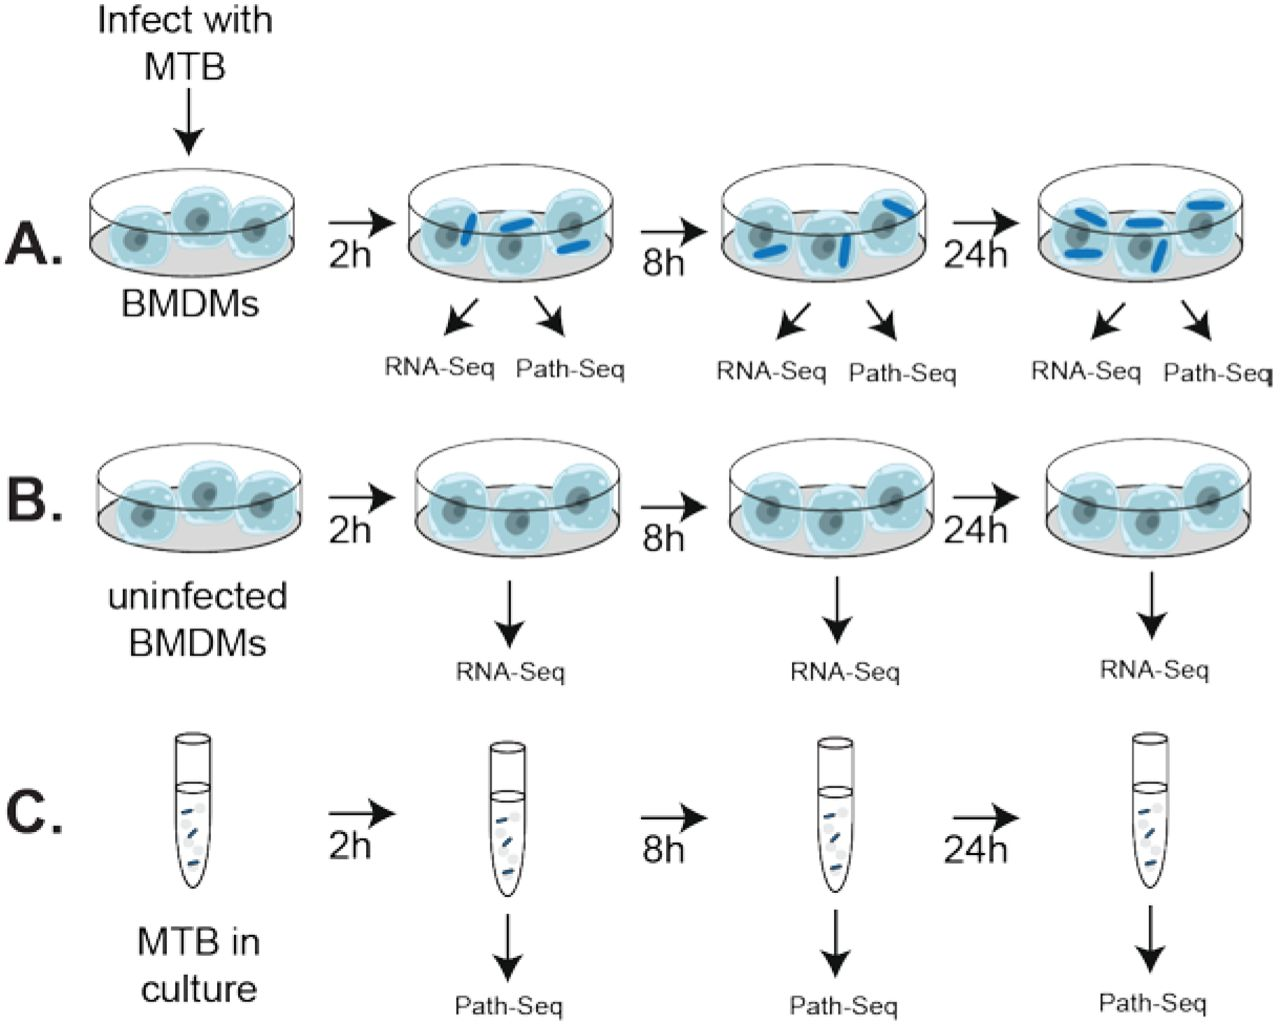 An essential mycolate remodeling program for mycobacterial